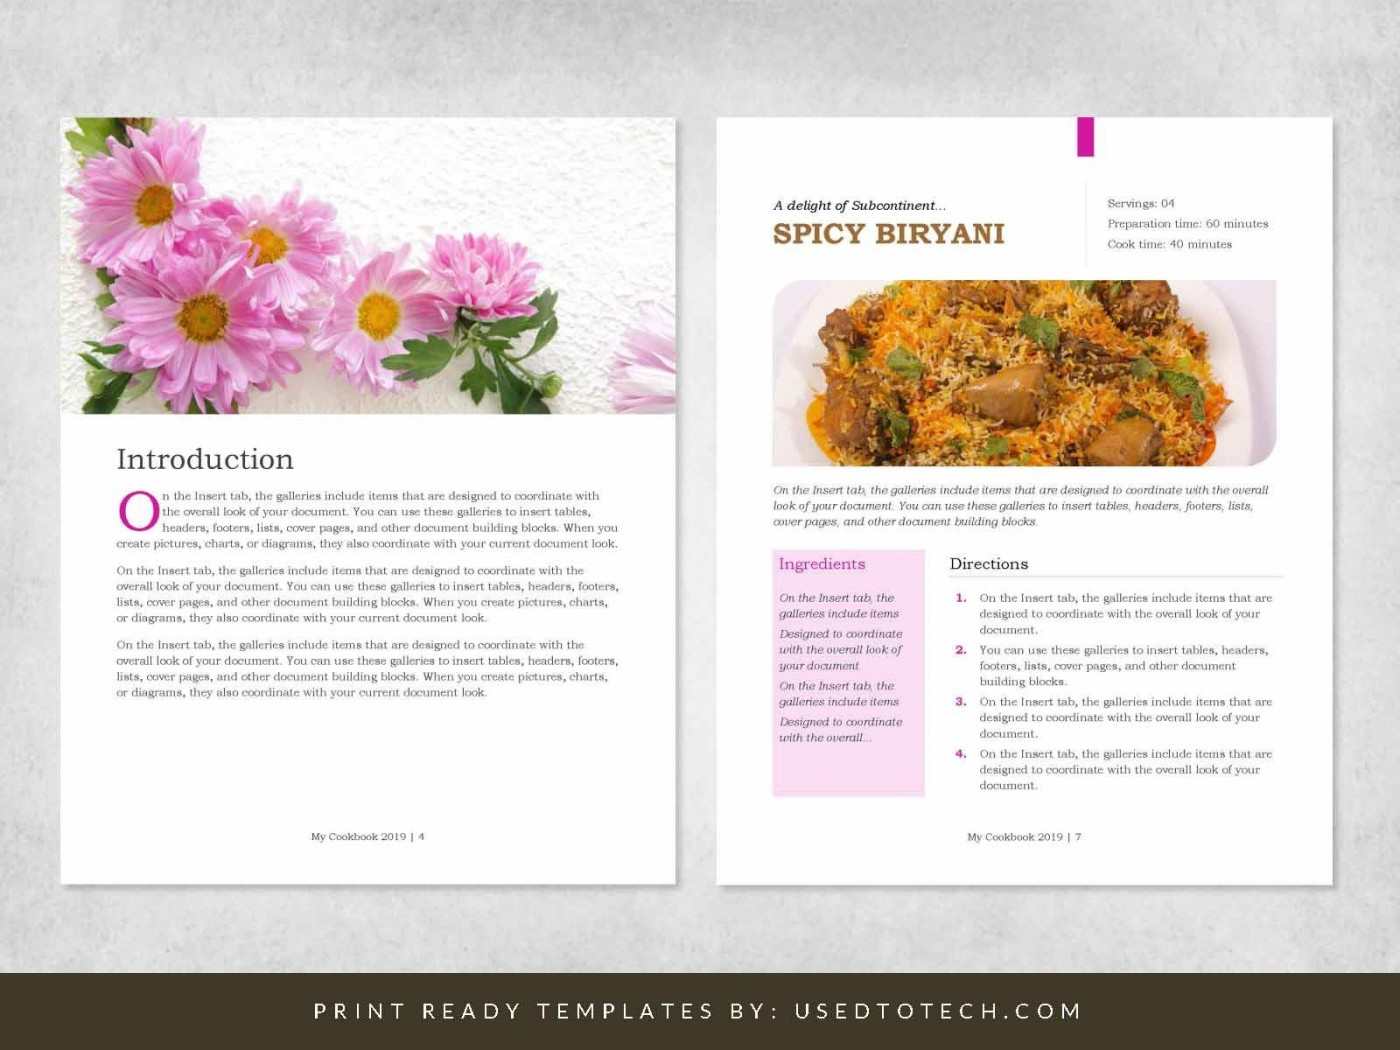 001 Magnificent Create Your Own Cookbook Template Idea  Make Free My1400